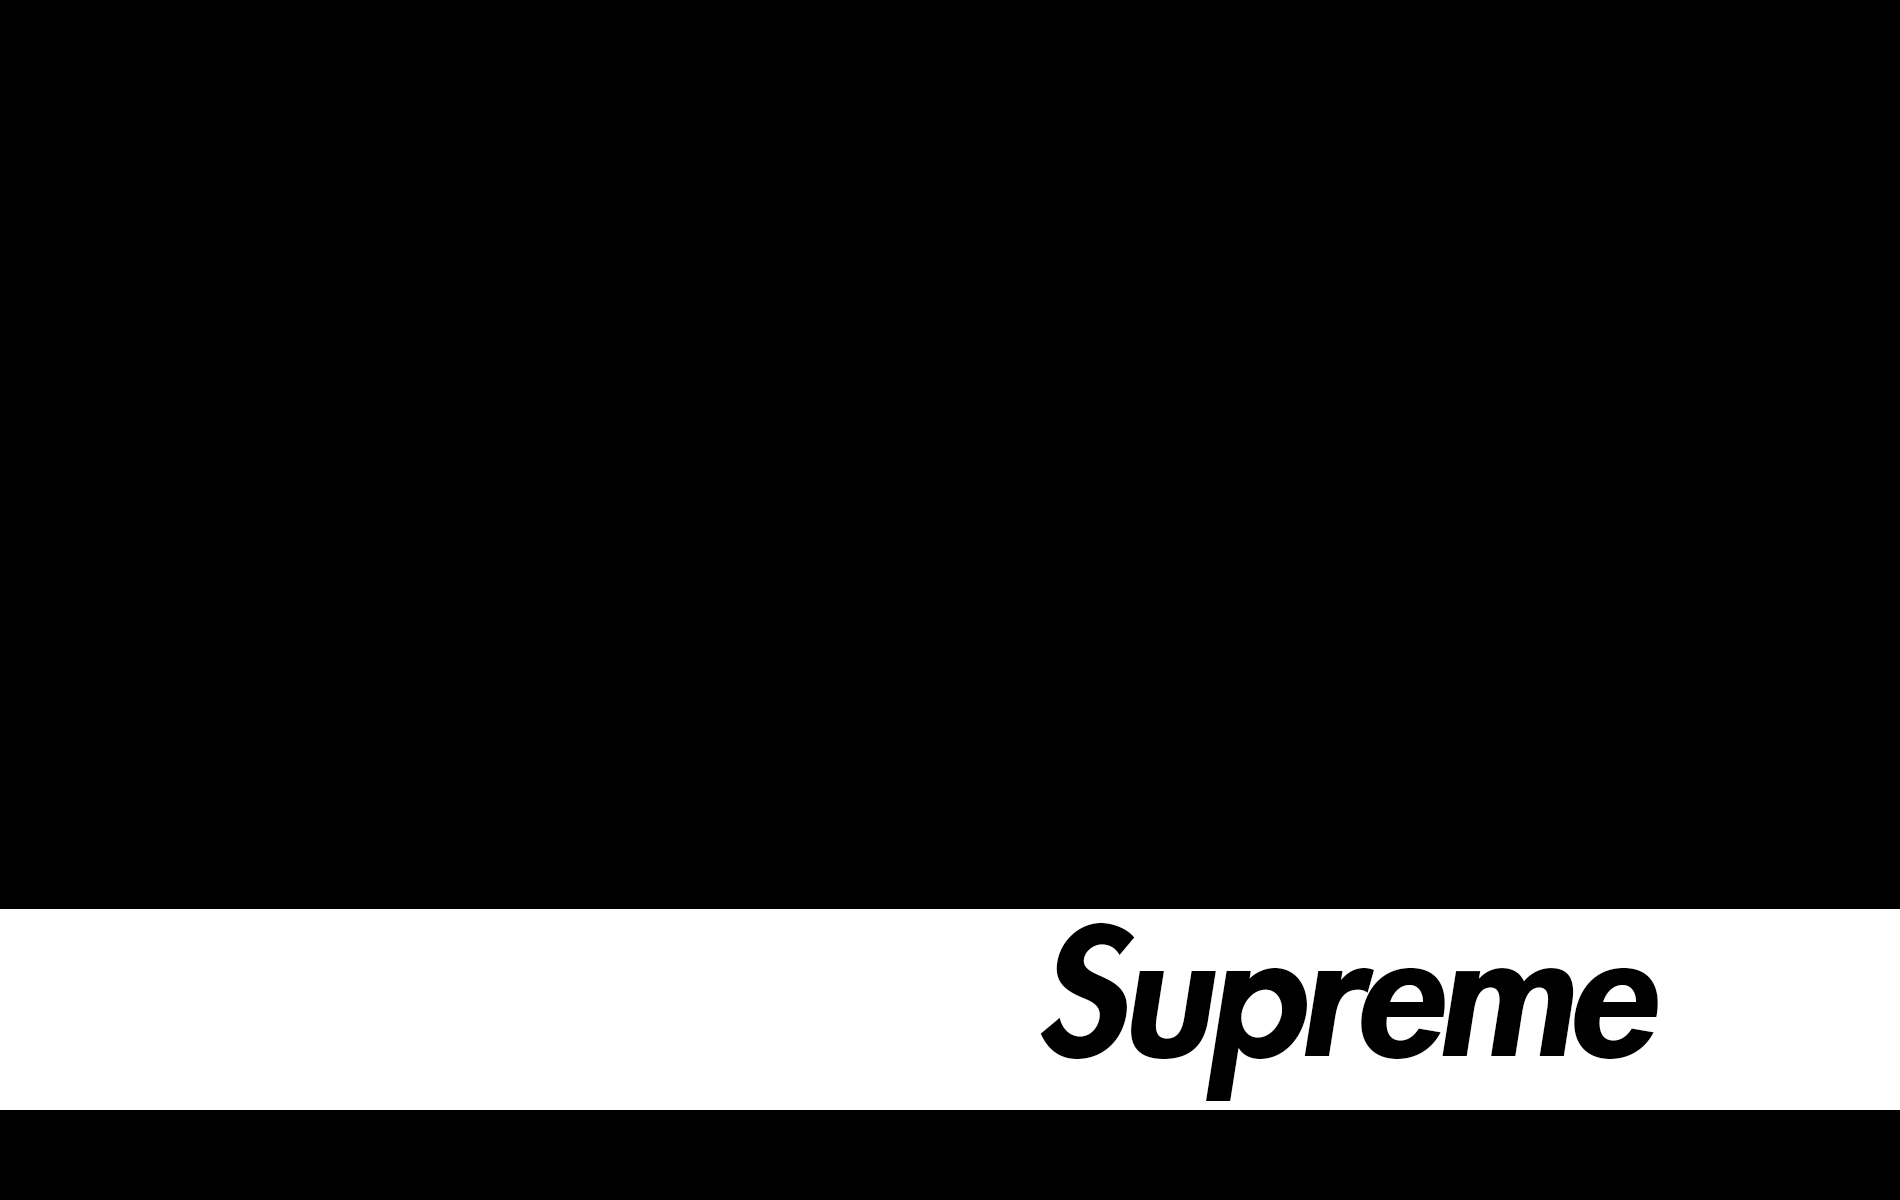 Supreme Wallpapers with F Word